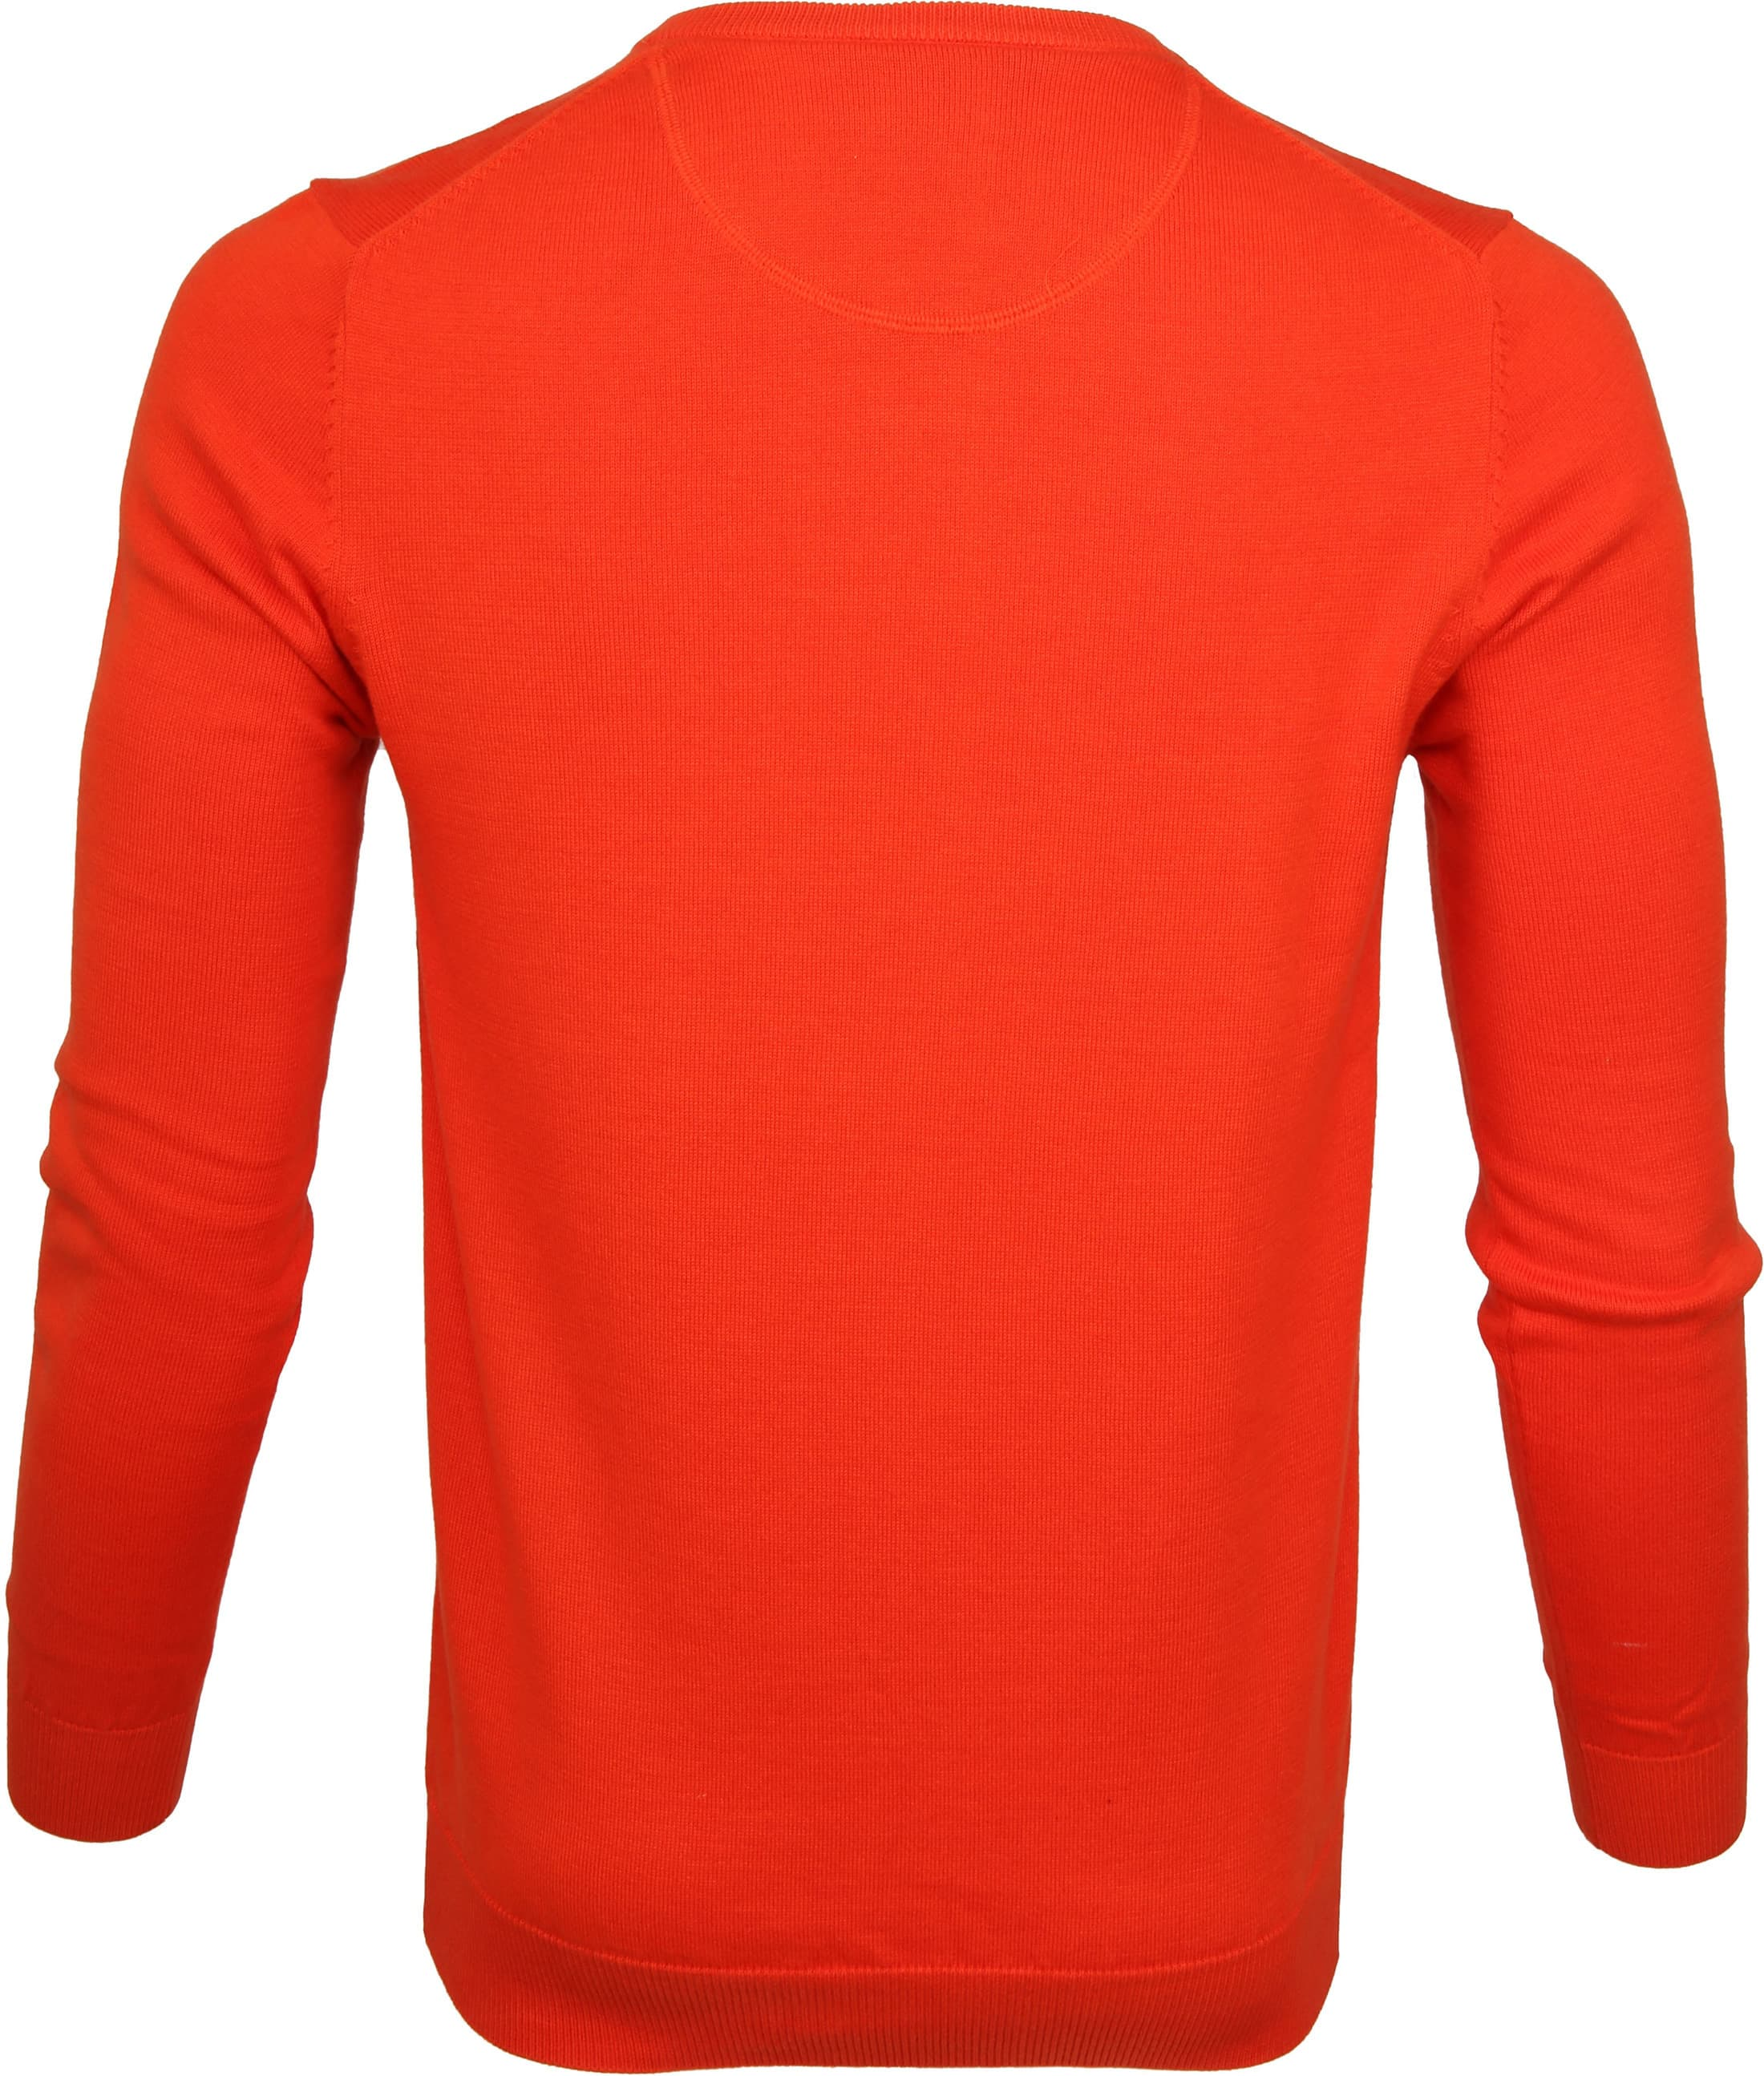 Suitable Vince Pullover Orange foto 3